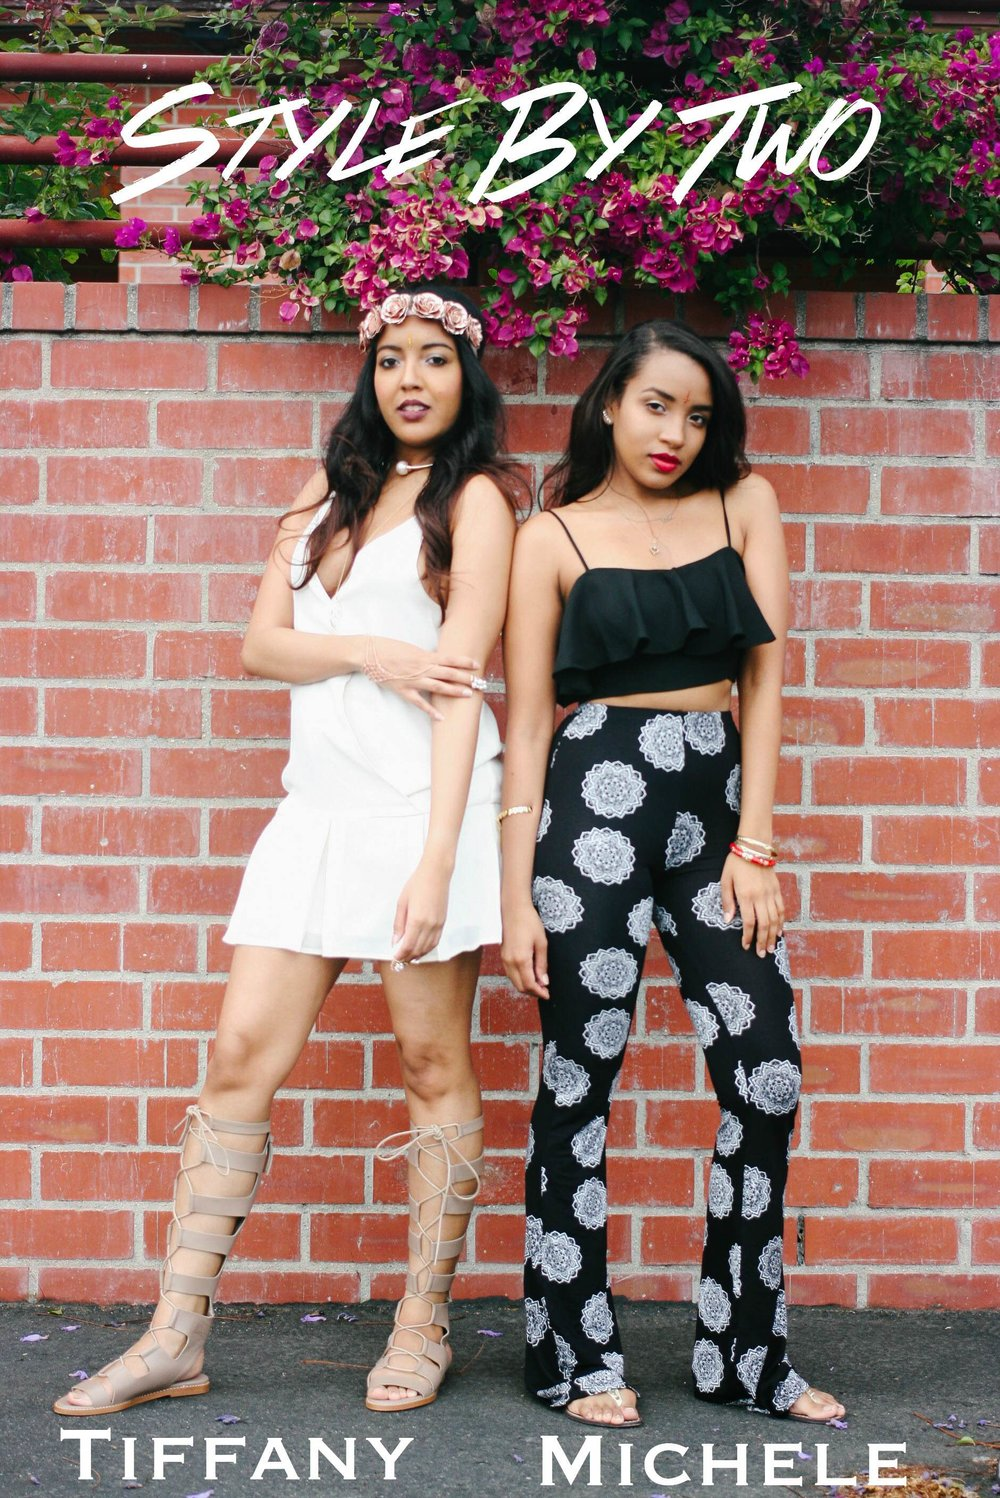 LIFESTYLE & FASHION - Fall in love with this fashionable duo. Imagine having two stylists to help you dress to impress.These island sisters are creating a buzz on social media, now they are right at your fingertips on myKEEtv.com. New episodes coming in November.